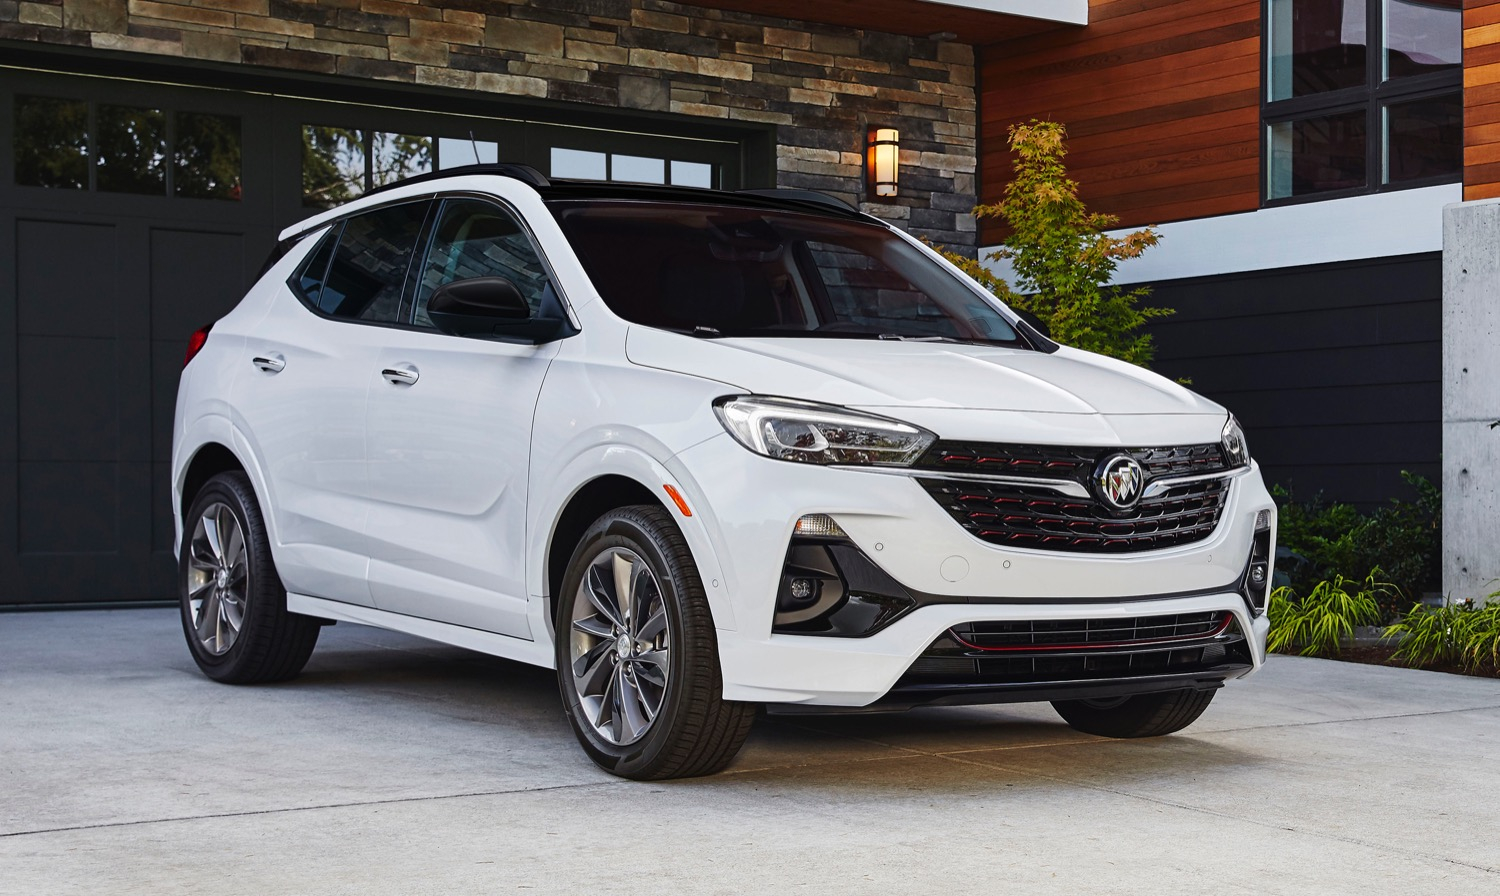 Buick Encore Gx Discount Offers Cash In February 2020 | Gm New 2022 Buick Encore Configurations, Dimensions, Deals